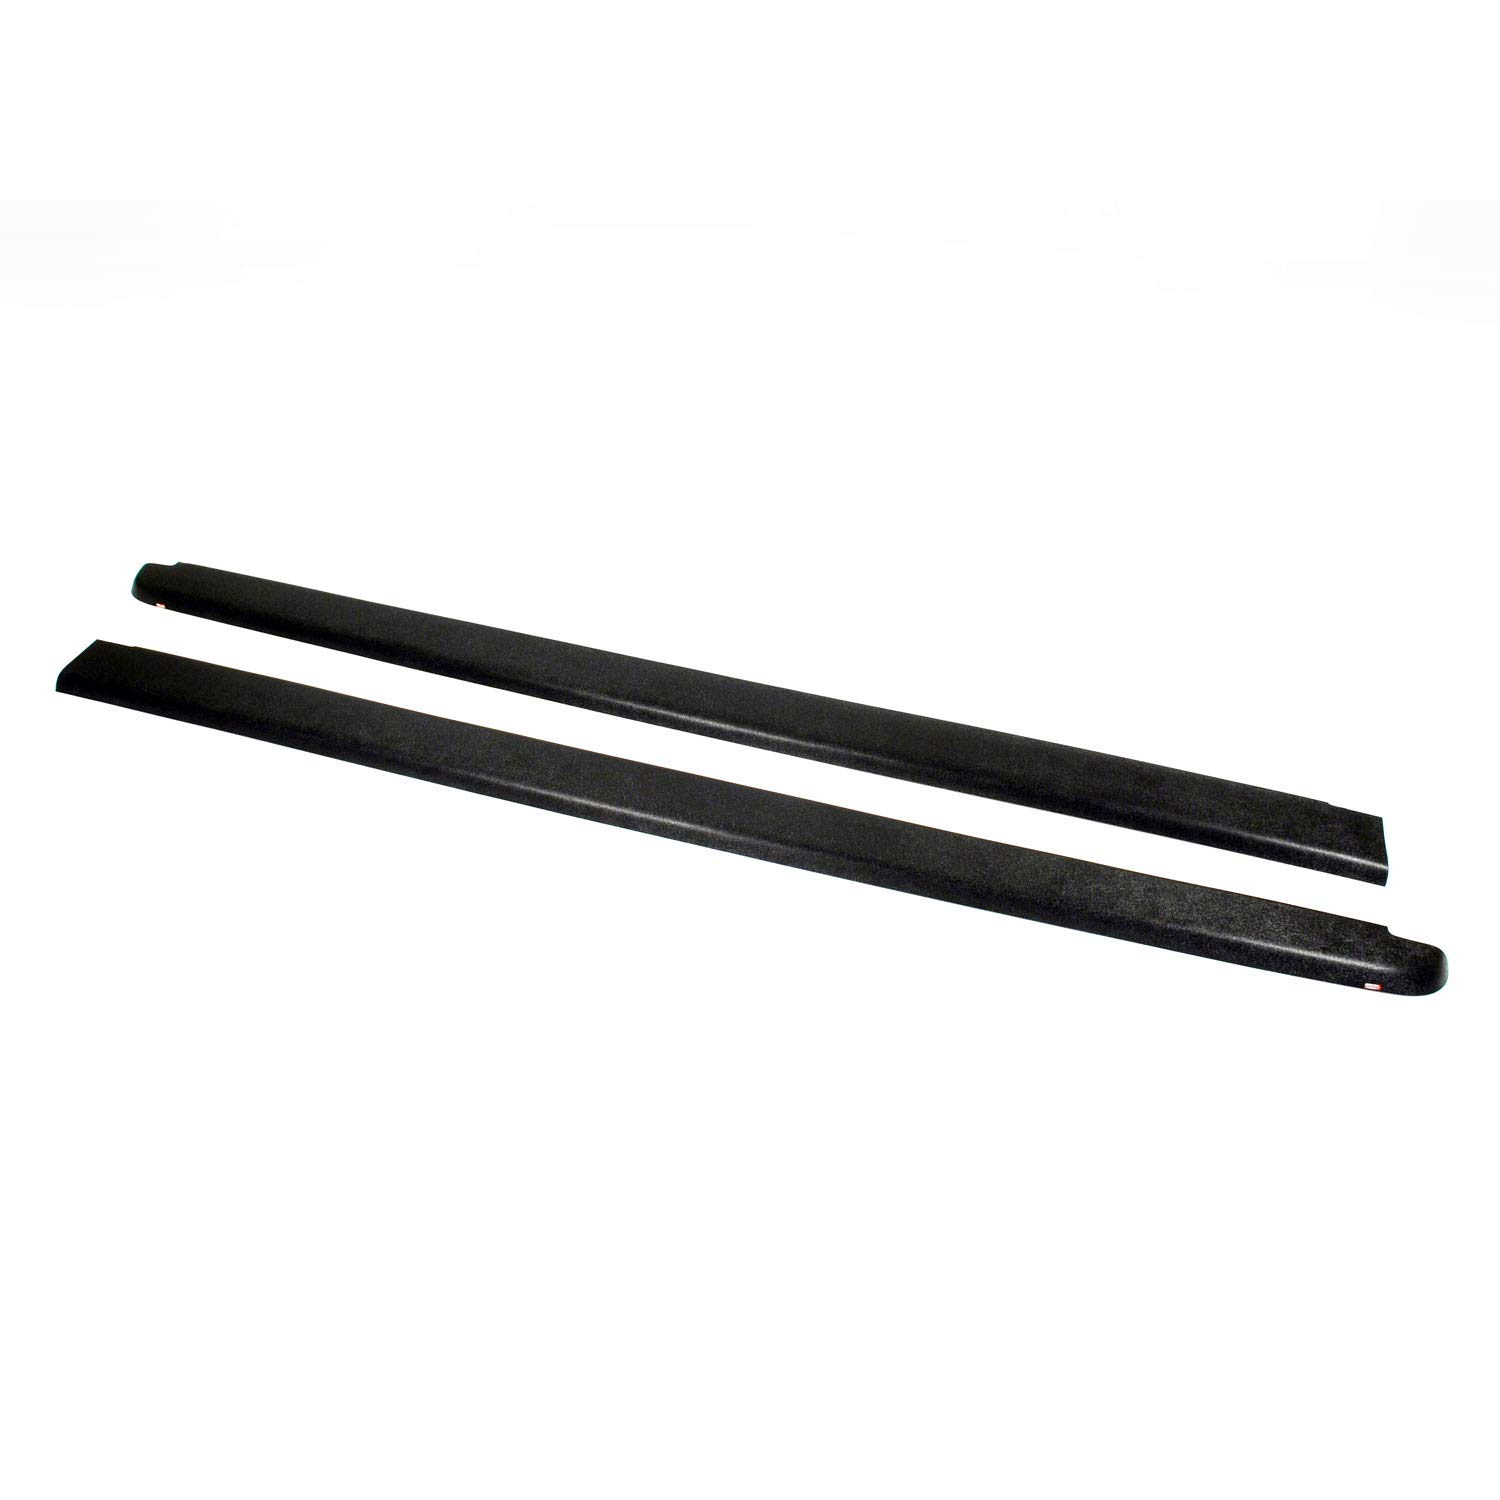 Wade 72-40151 Truck Bed Rail Caps Black Smooth Finish without Stake Holes for 1999-2007 Silverado & Sierra 1500 2500 (Classic only) with 6.5ft bed (Set of 2) Westin